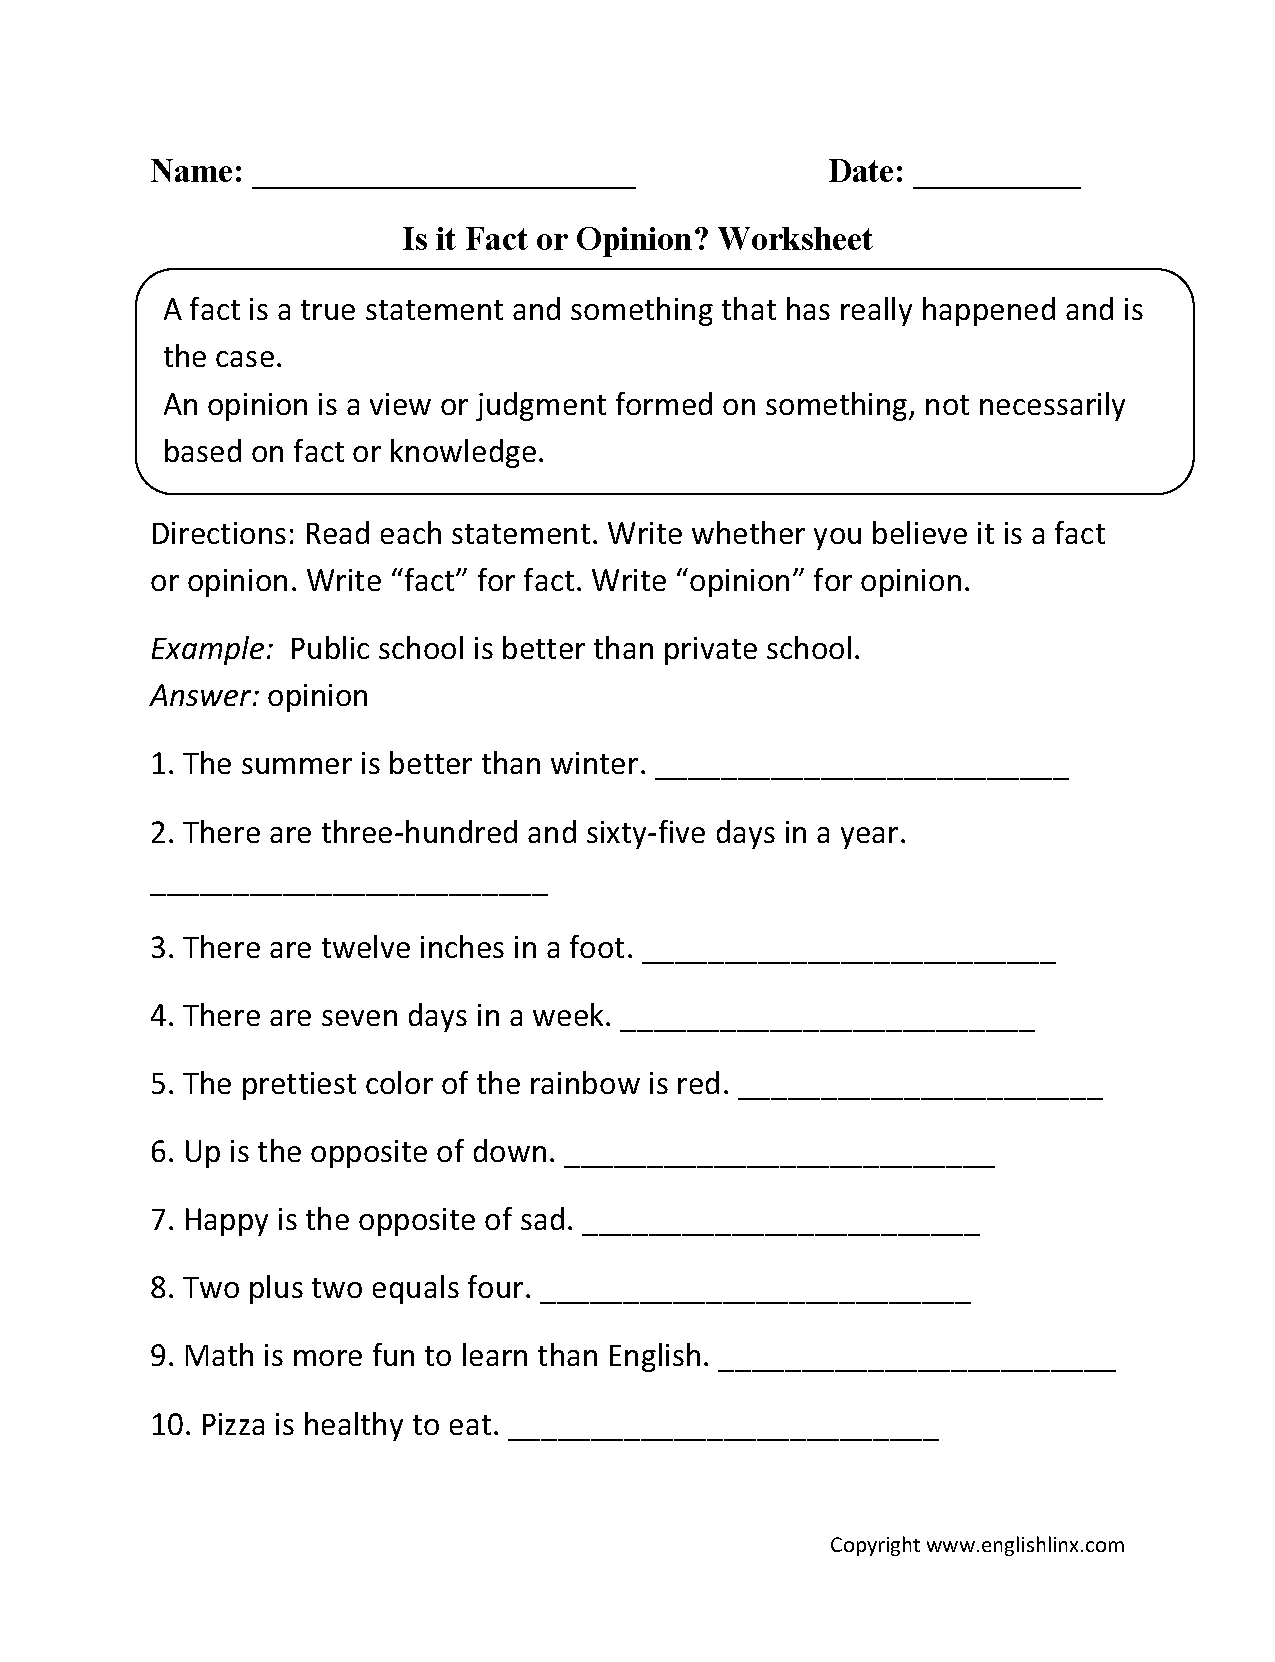 Printables Fact Vs Opinion Worksheets reading worksheets fact and opinion is it or worksheet